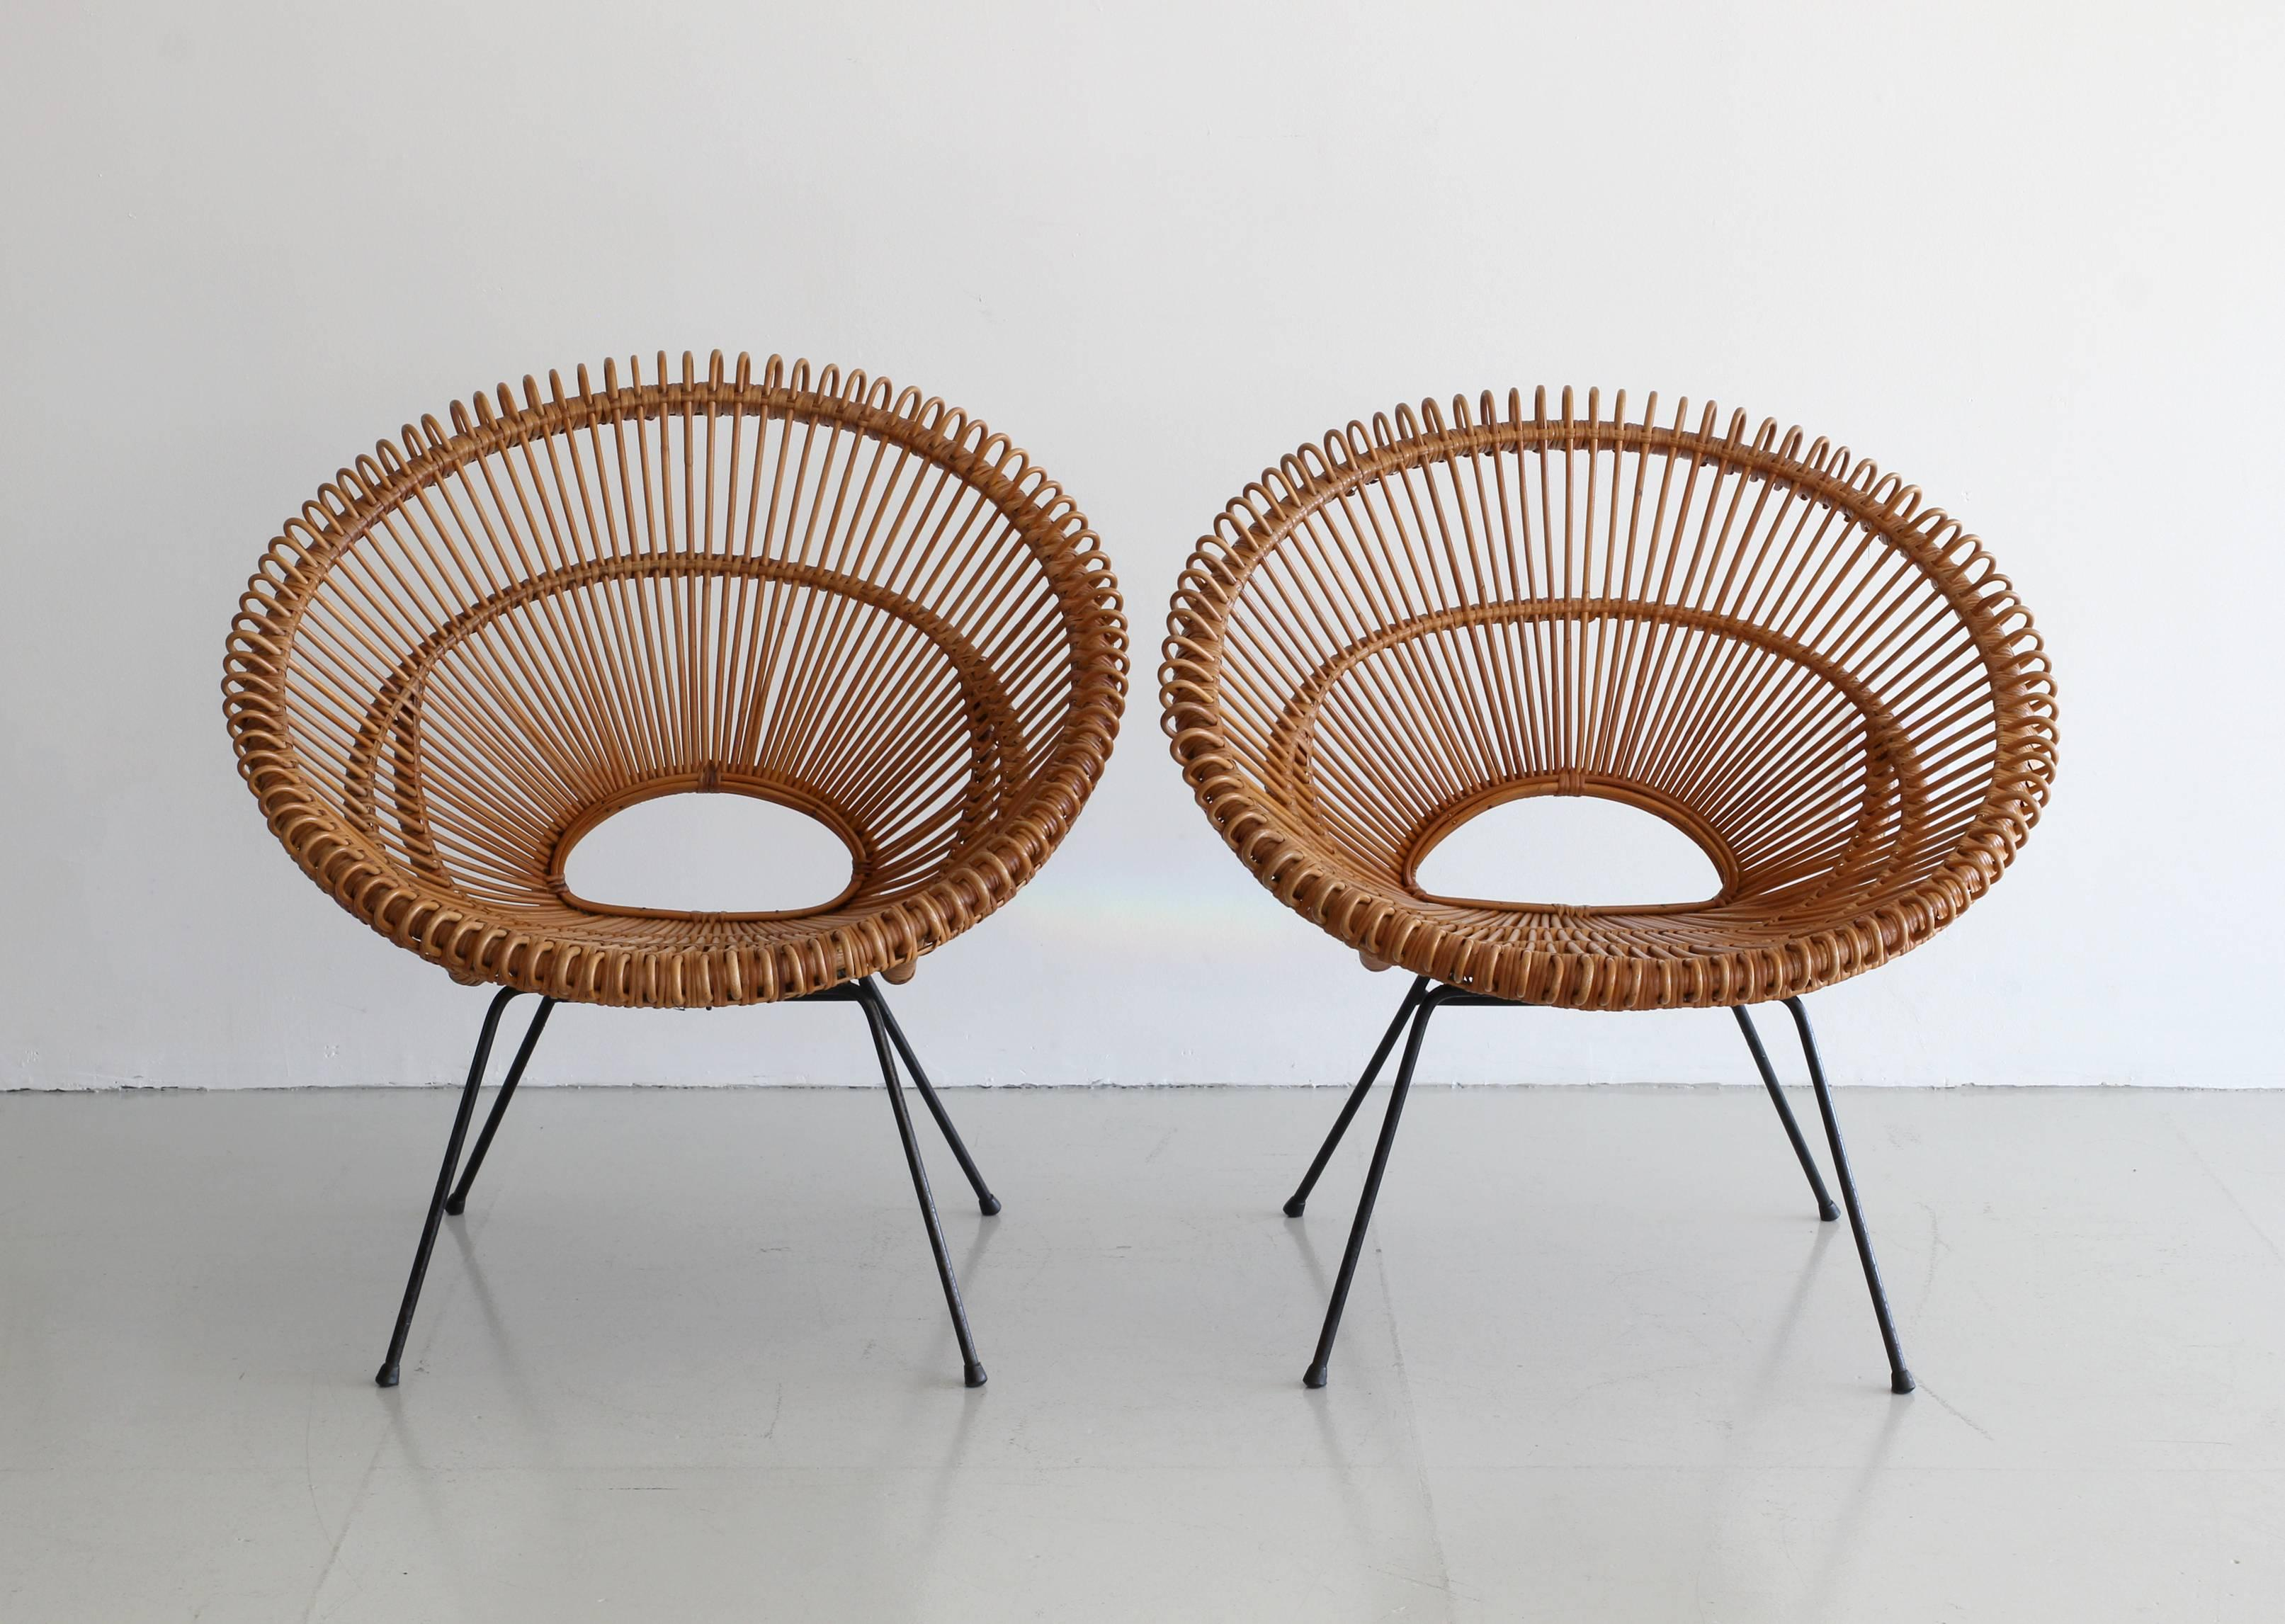 Beautiful Rattan Bucket Chairs In The Style Of Franco Albini. Wonderful  Shape With Small Open